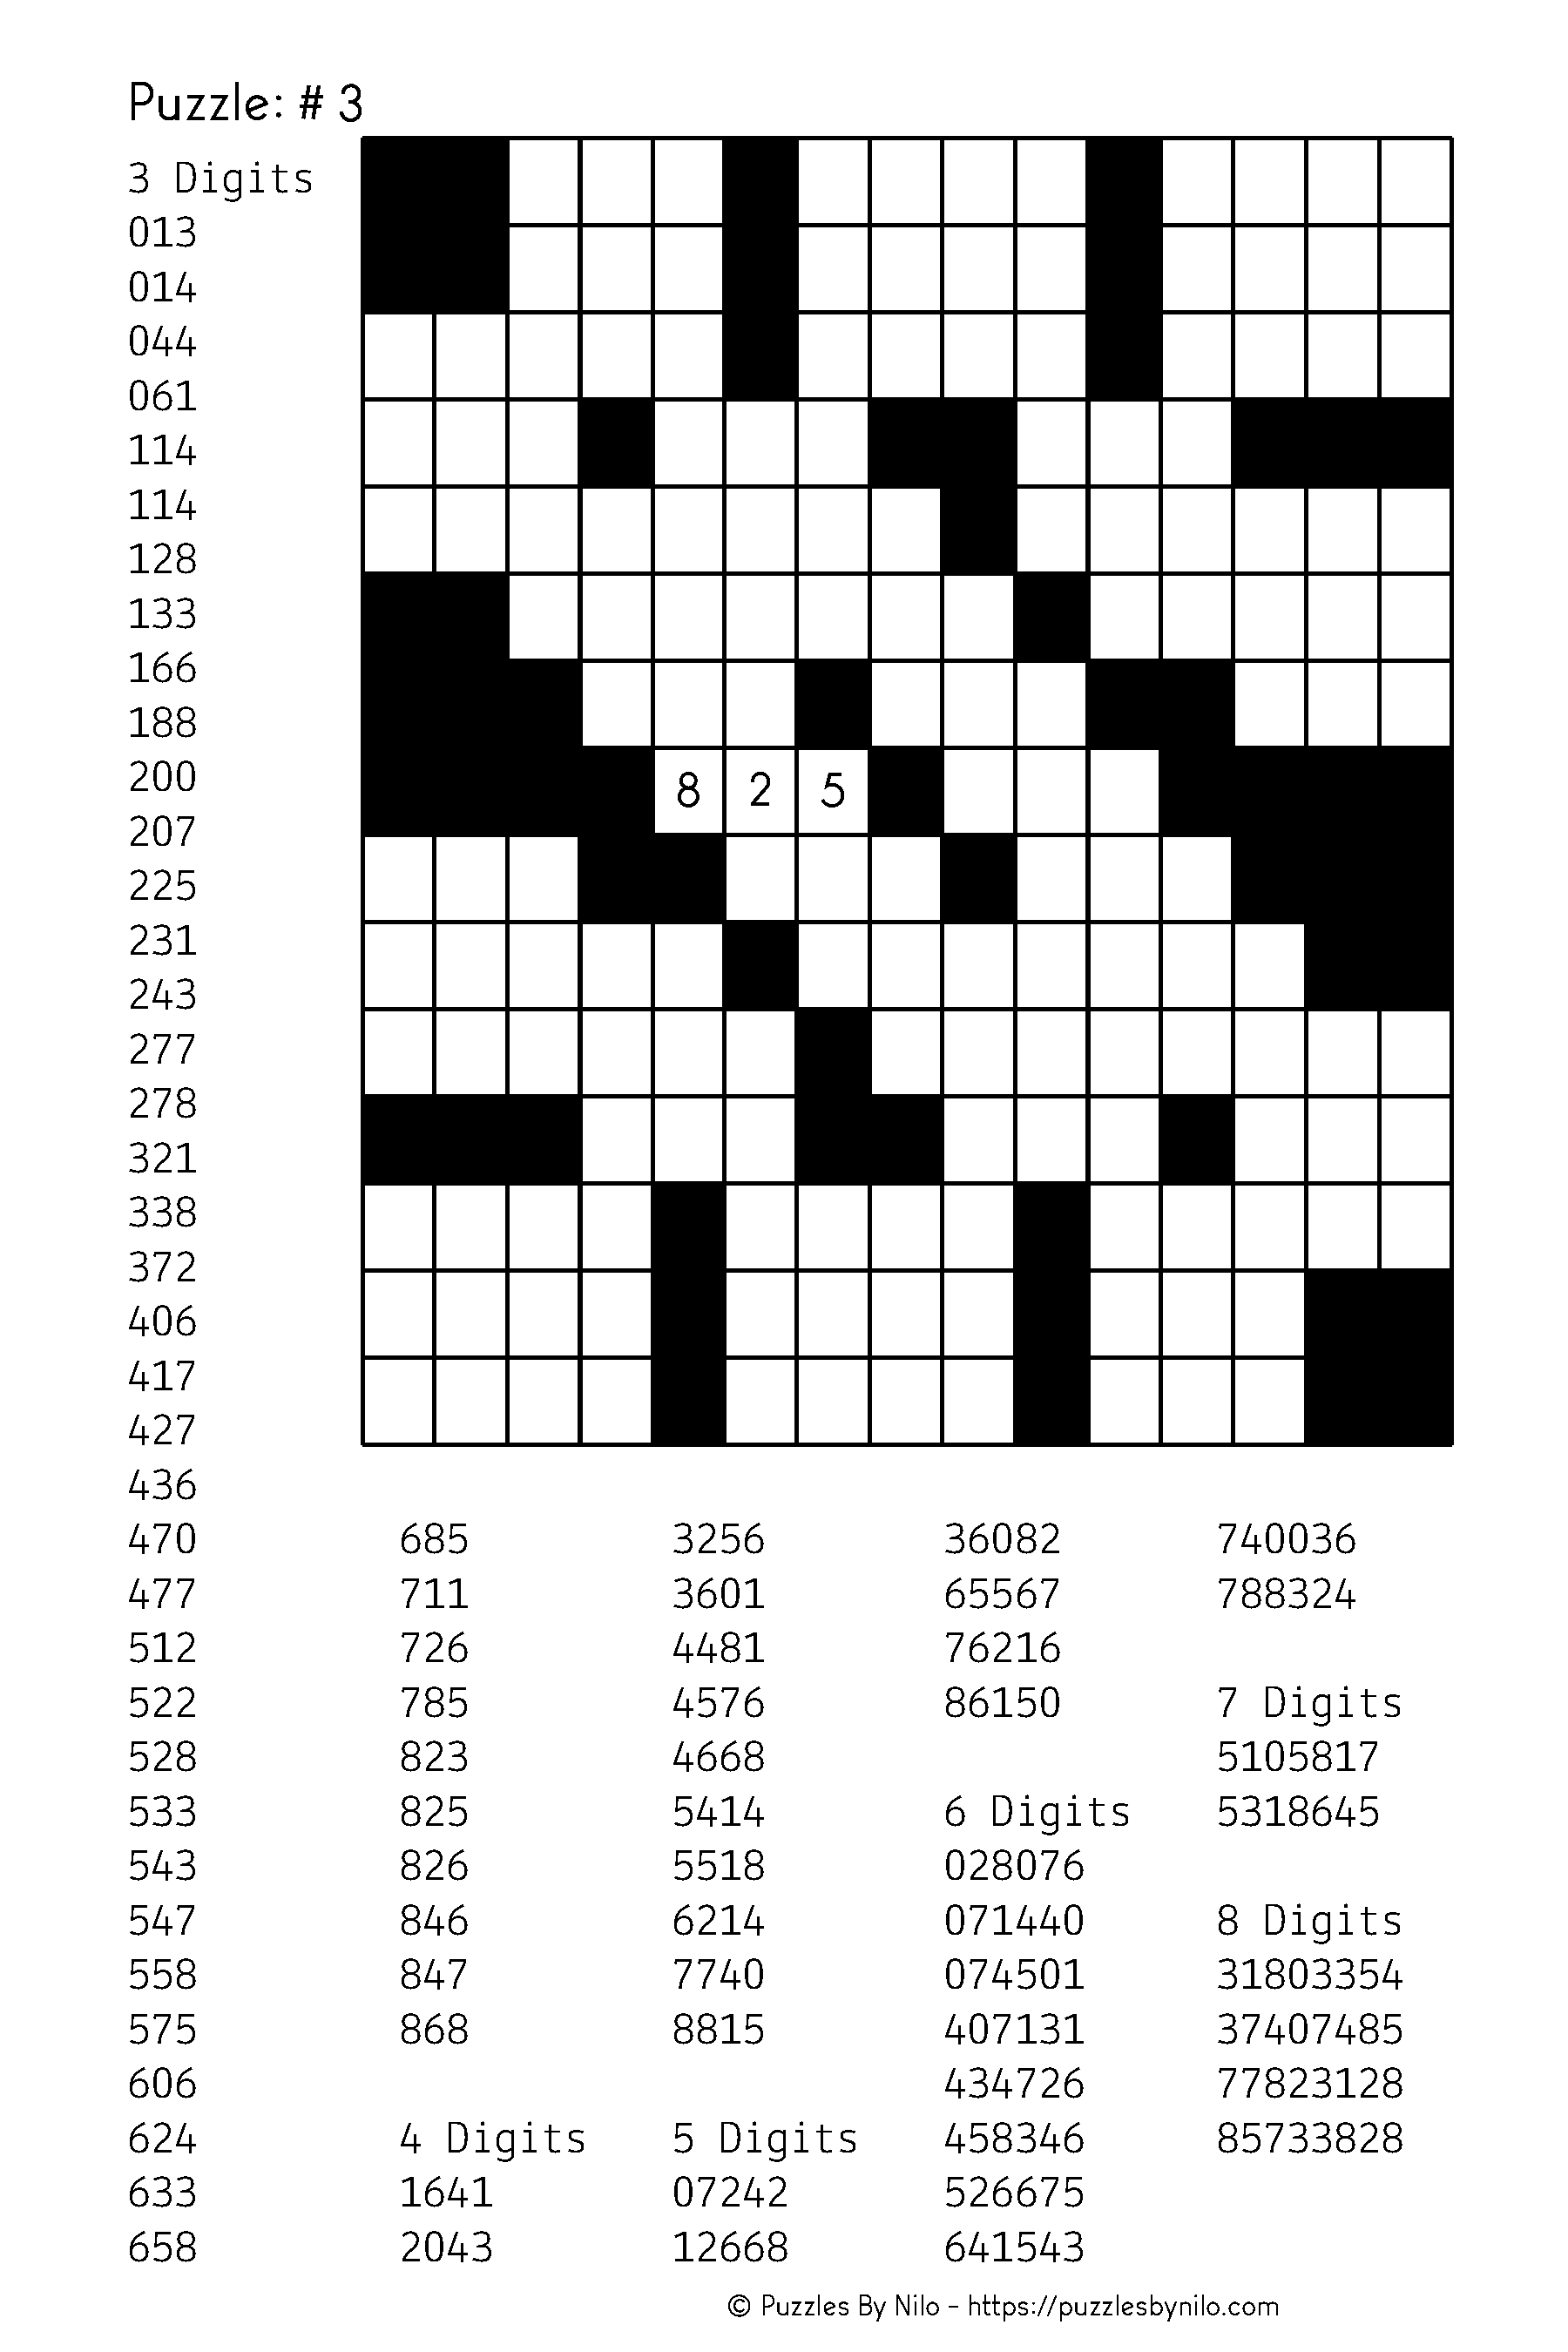 Get Your Free Puzzle Here! - Https://goo.gl/hxpjtw | Math Ideas - Free Printable Crossword Puzzle #6